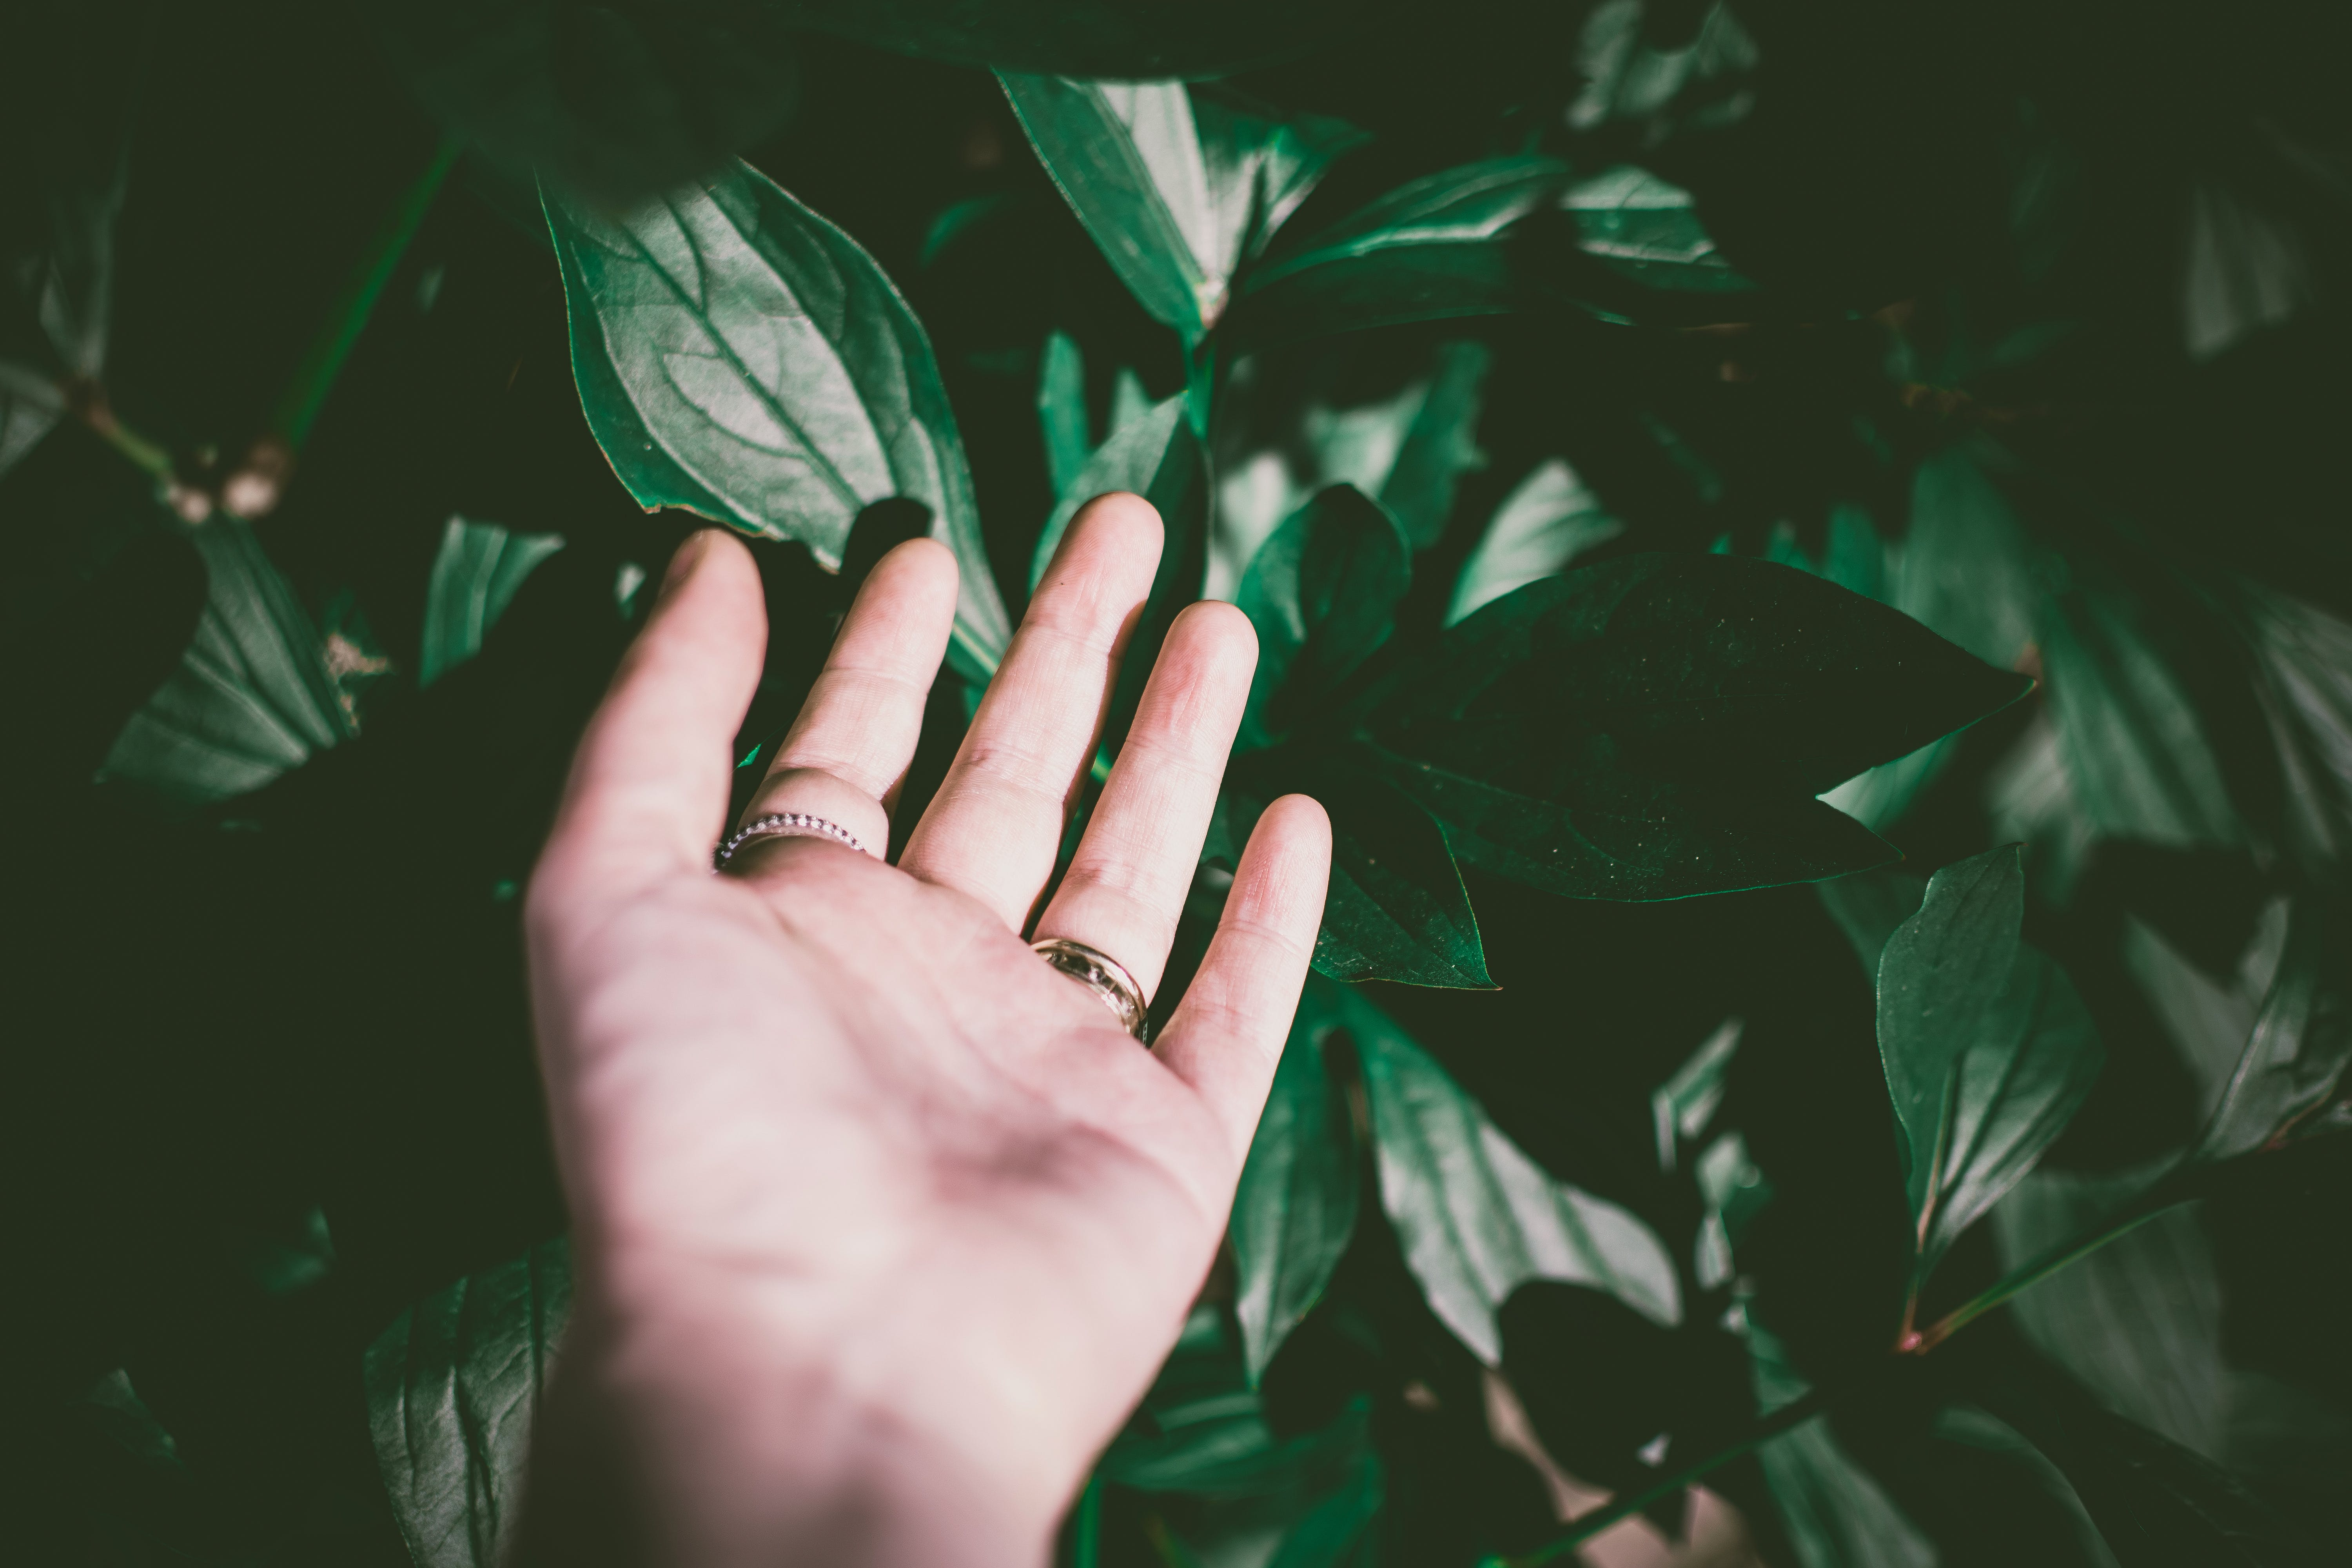 Person Wearing Silver-colored Ring Touching Green Leaf